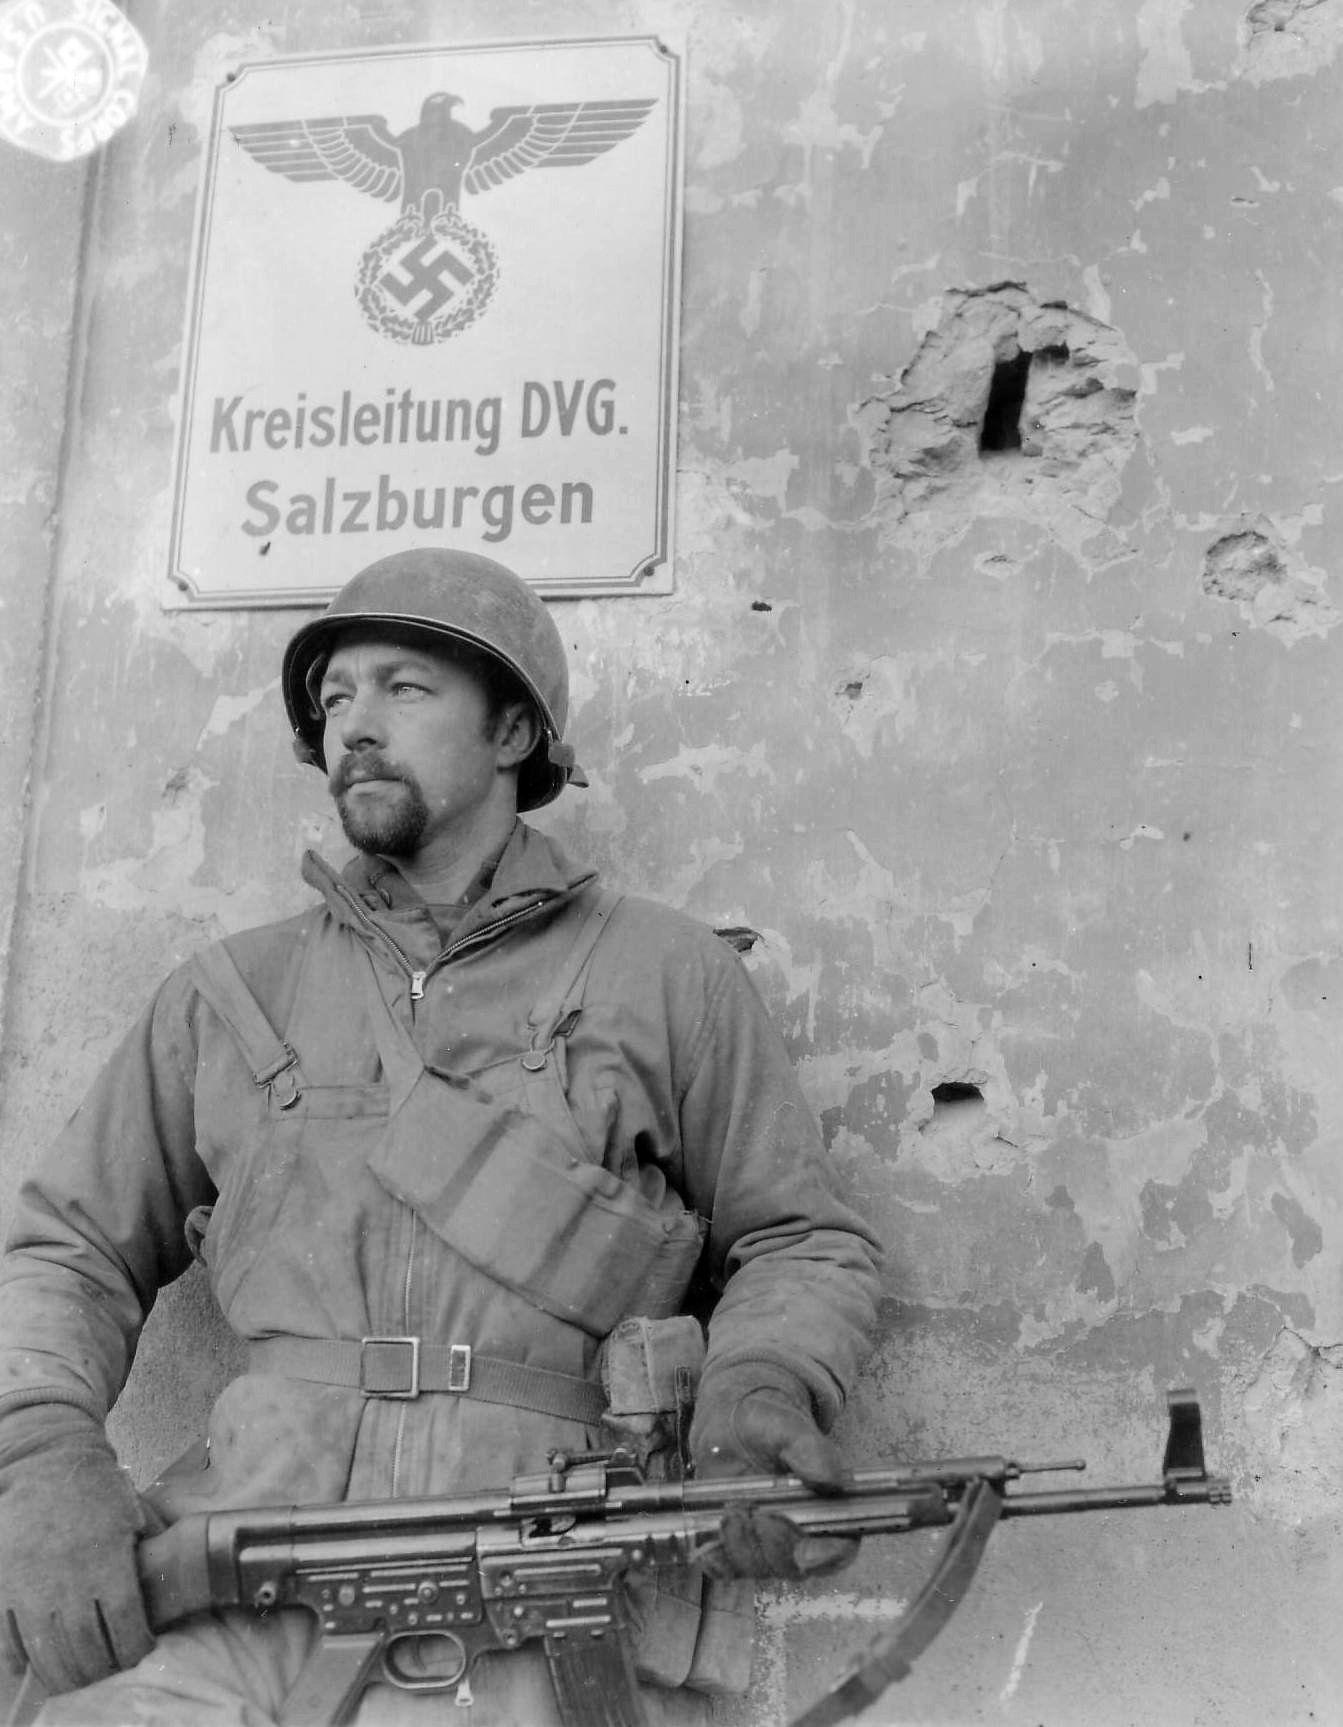 An American soldier with a captured German STG44. This was the 1st ever full-on assault rifle. It had a very high rate of fire & was extremely durable...